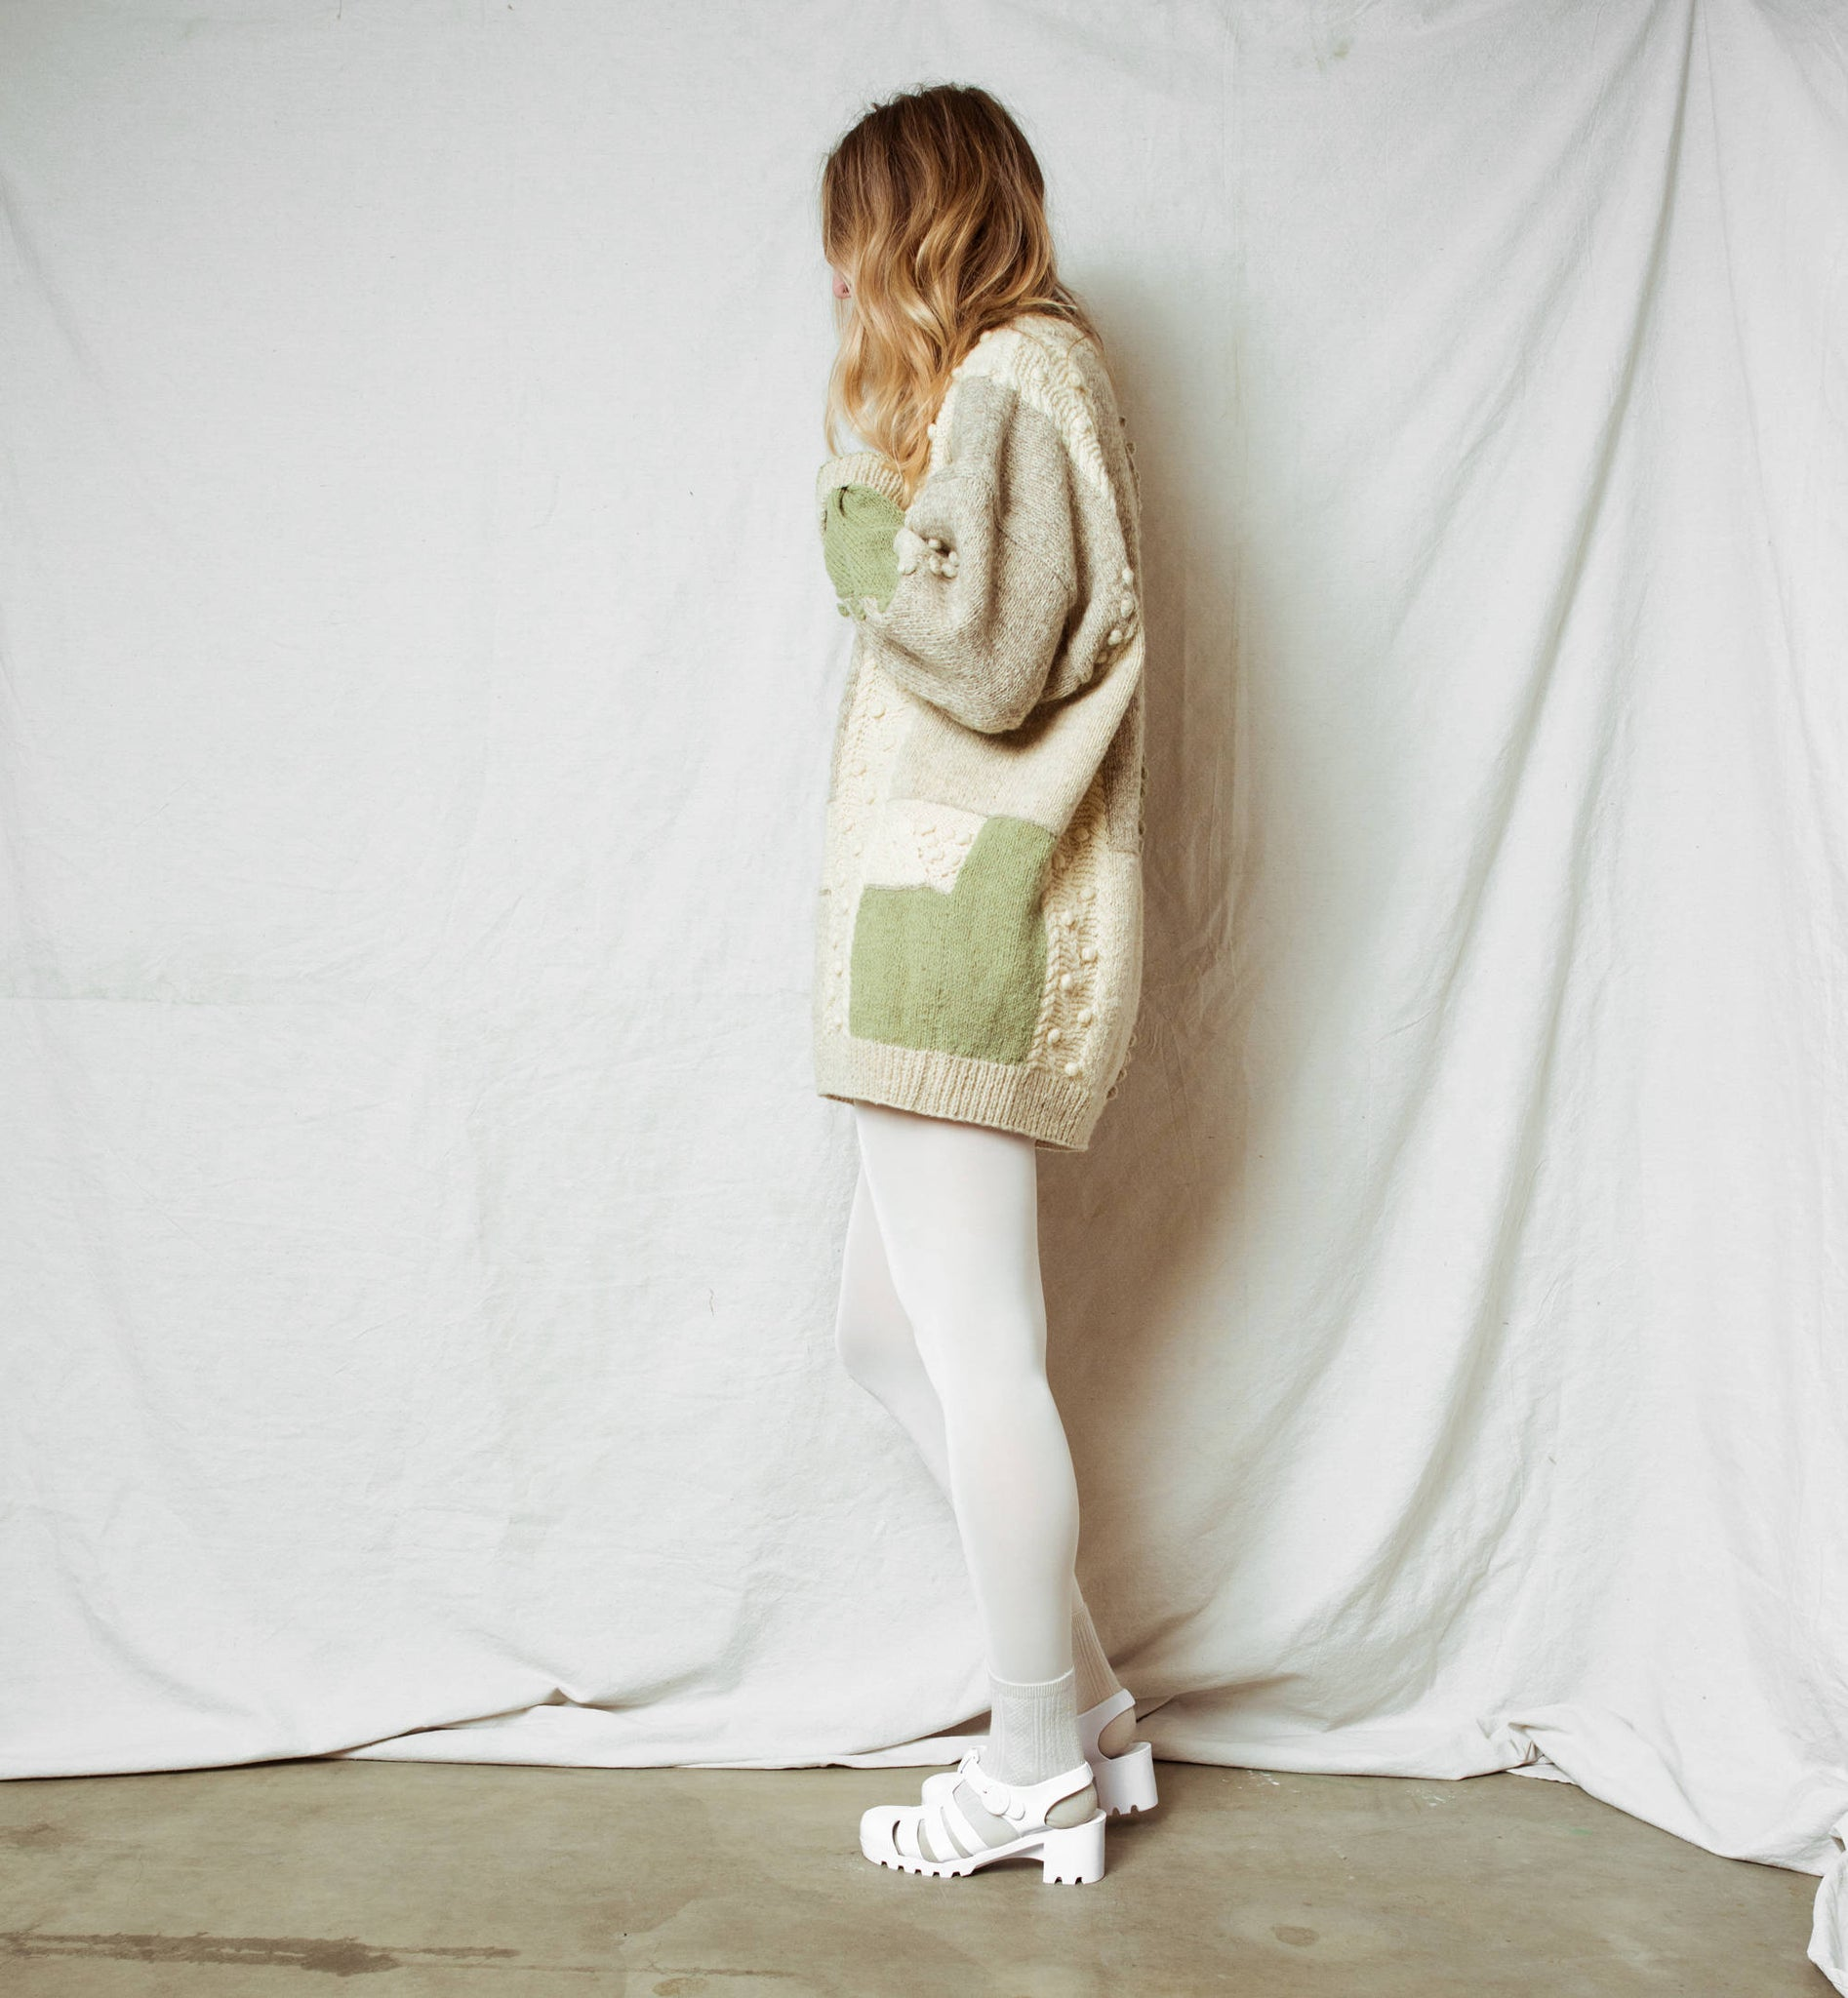 Vintage Oversized Creme Green Pom Pom Sweater Dress